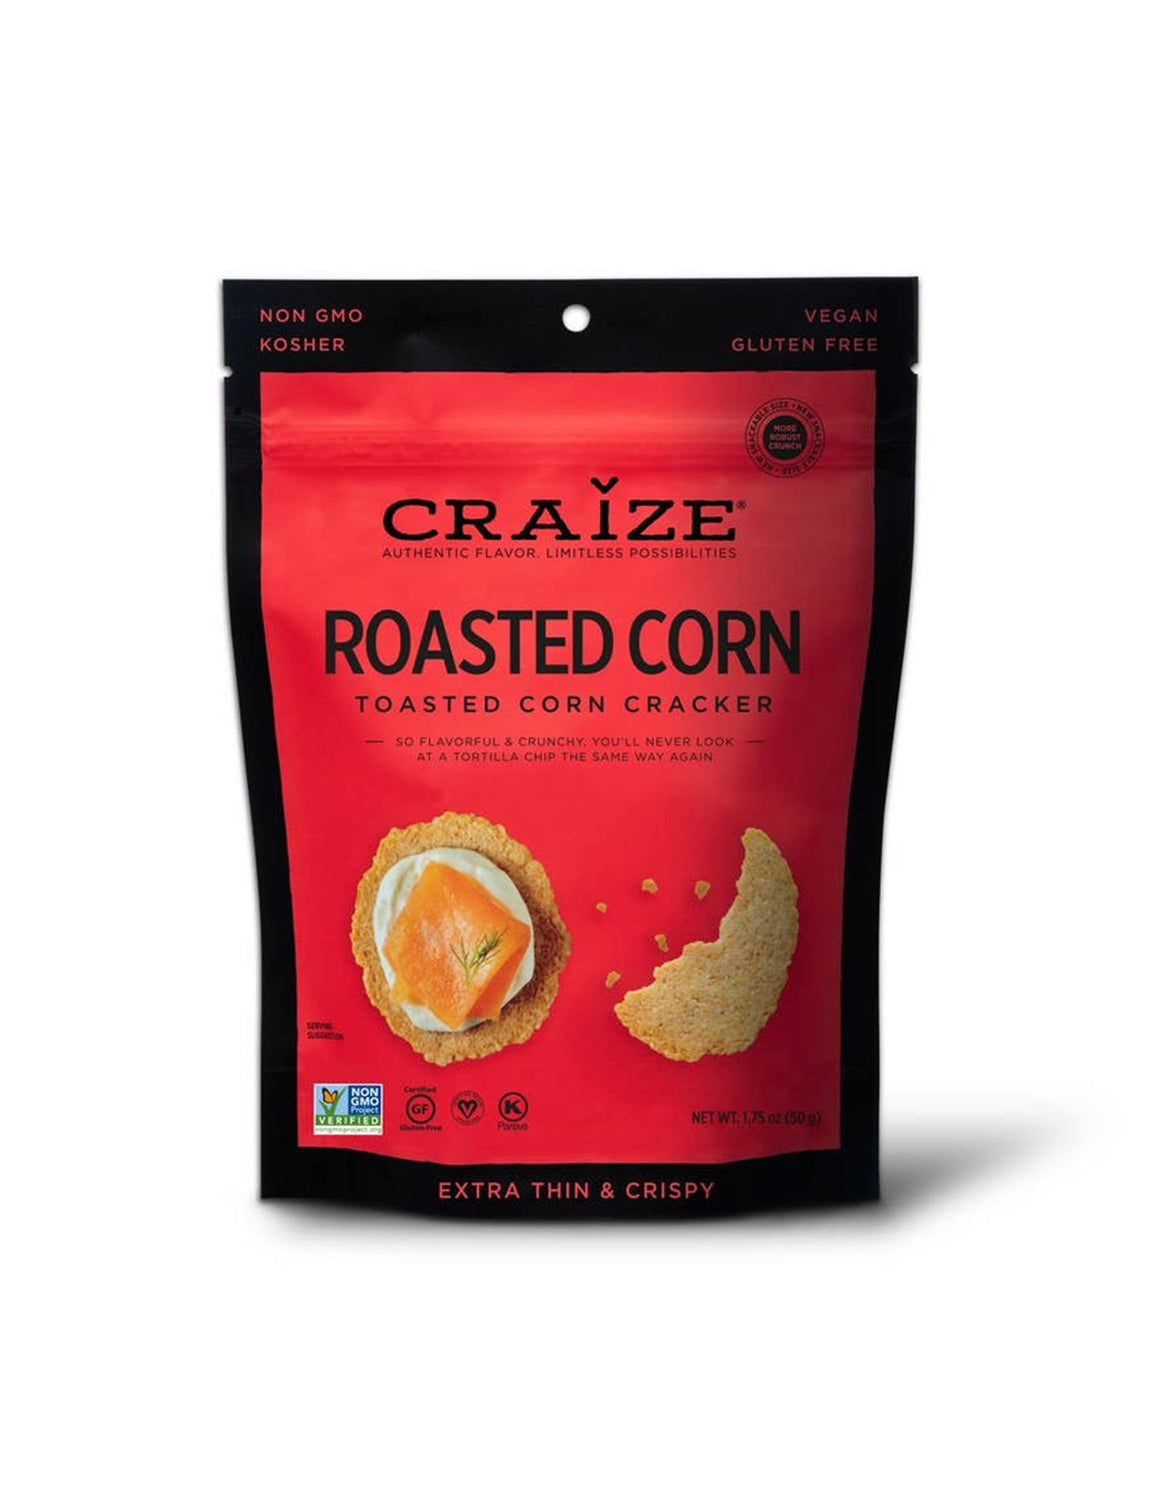 Craize Toasted Corn Crackers - Roasted Corn